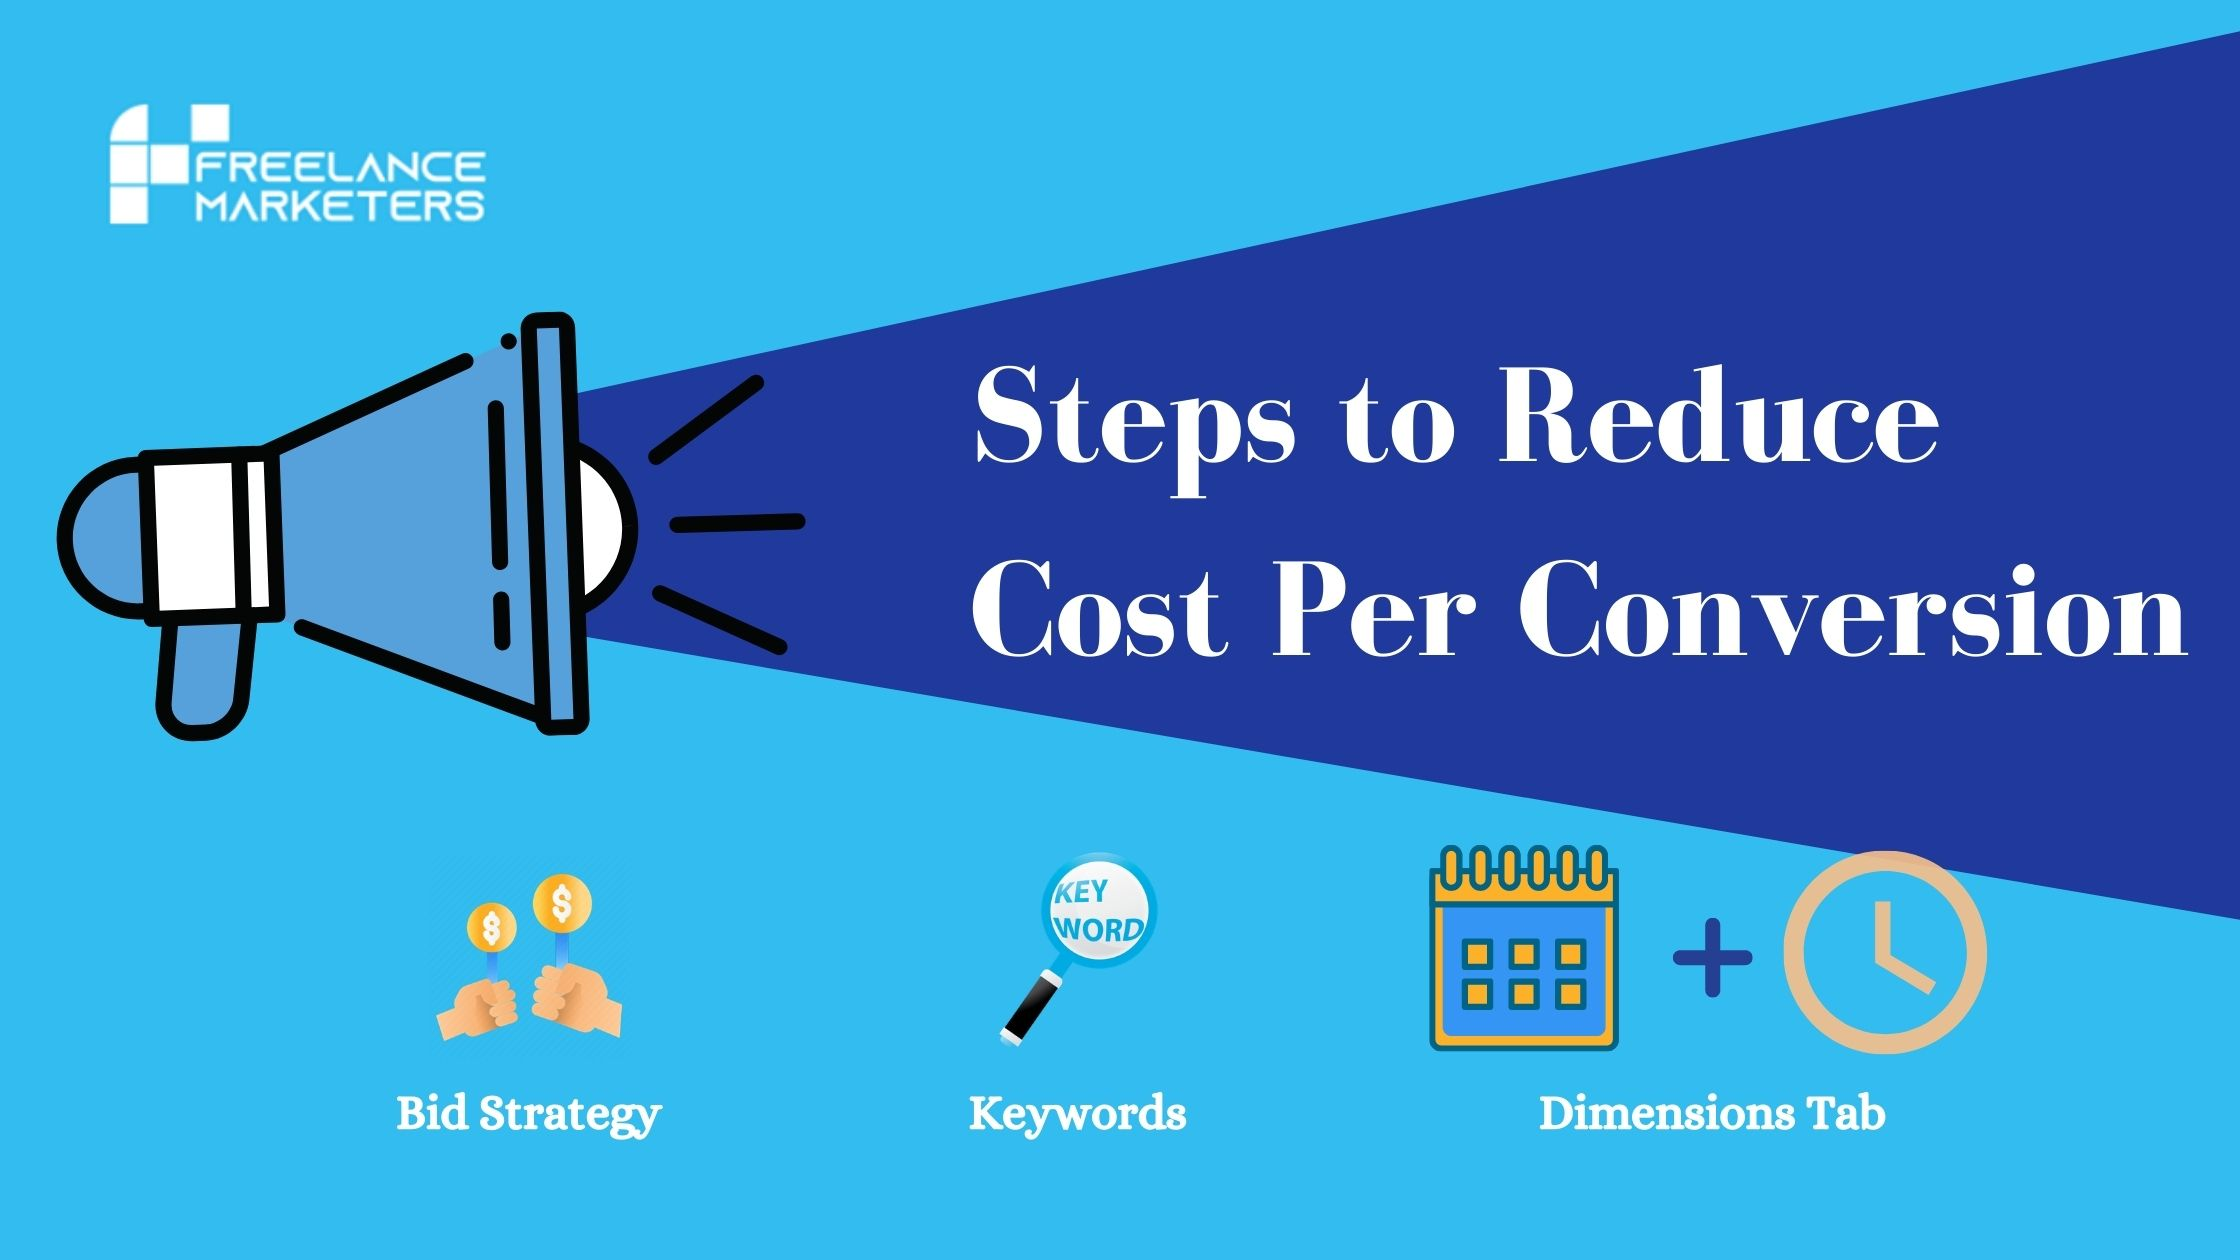 The 3 Most Crucial Ways to Reducing Higher Cost Per Conversion